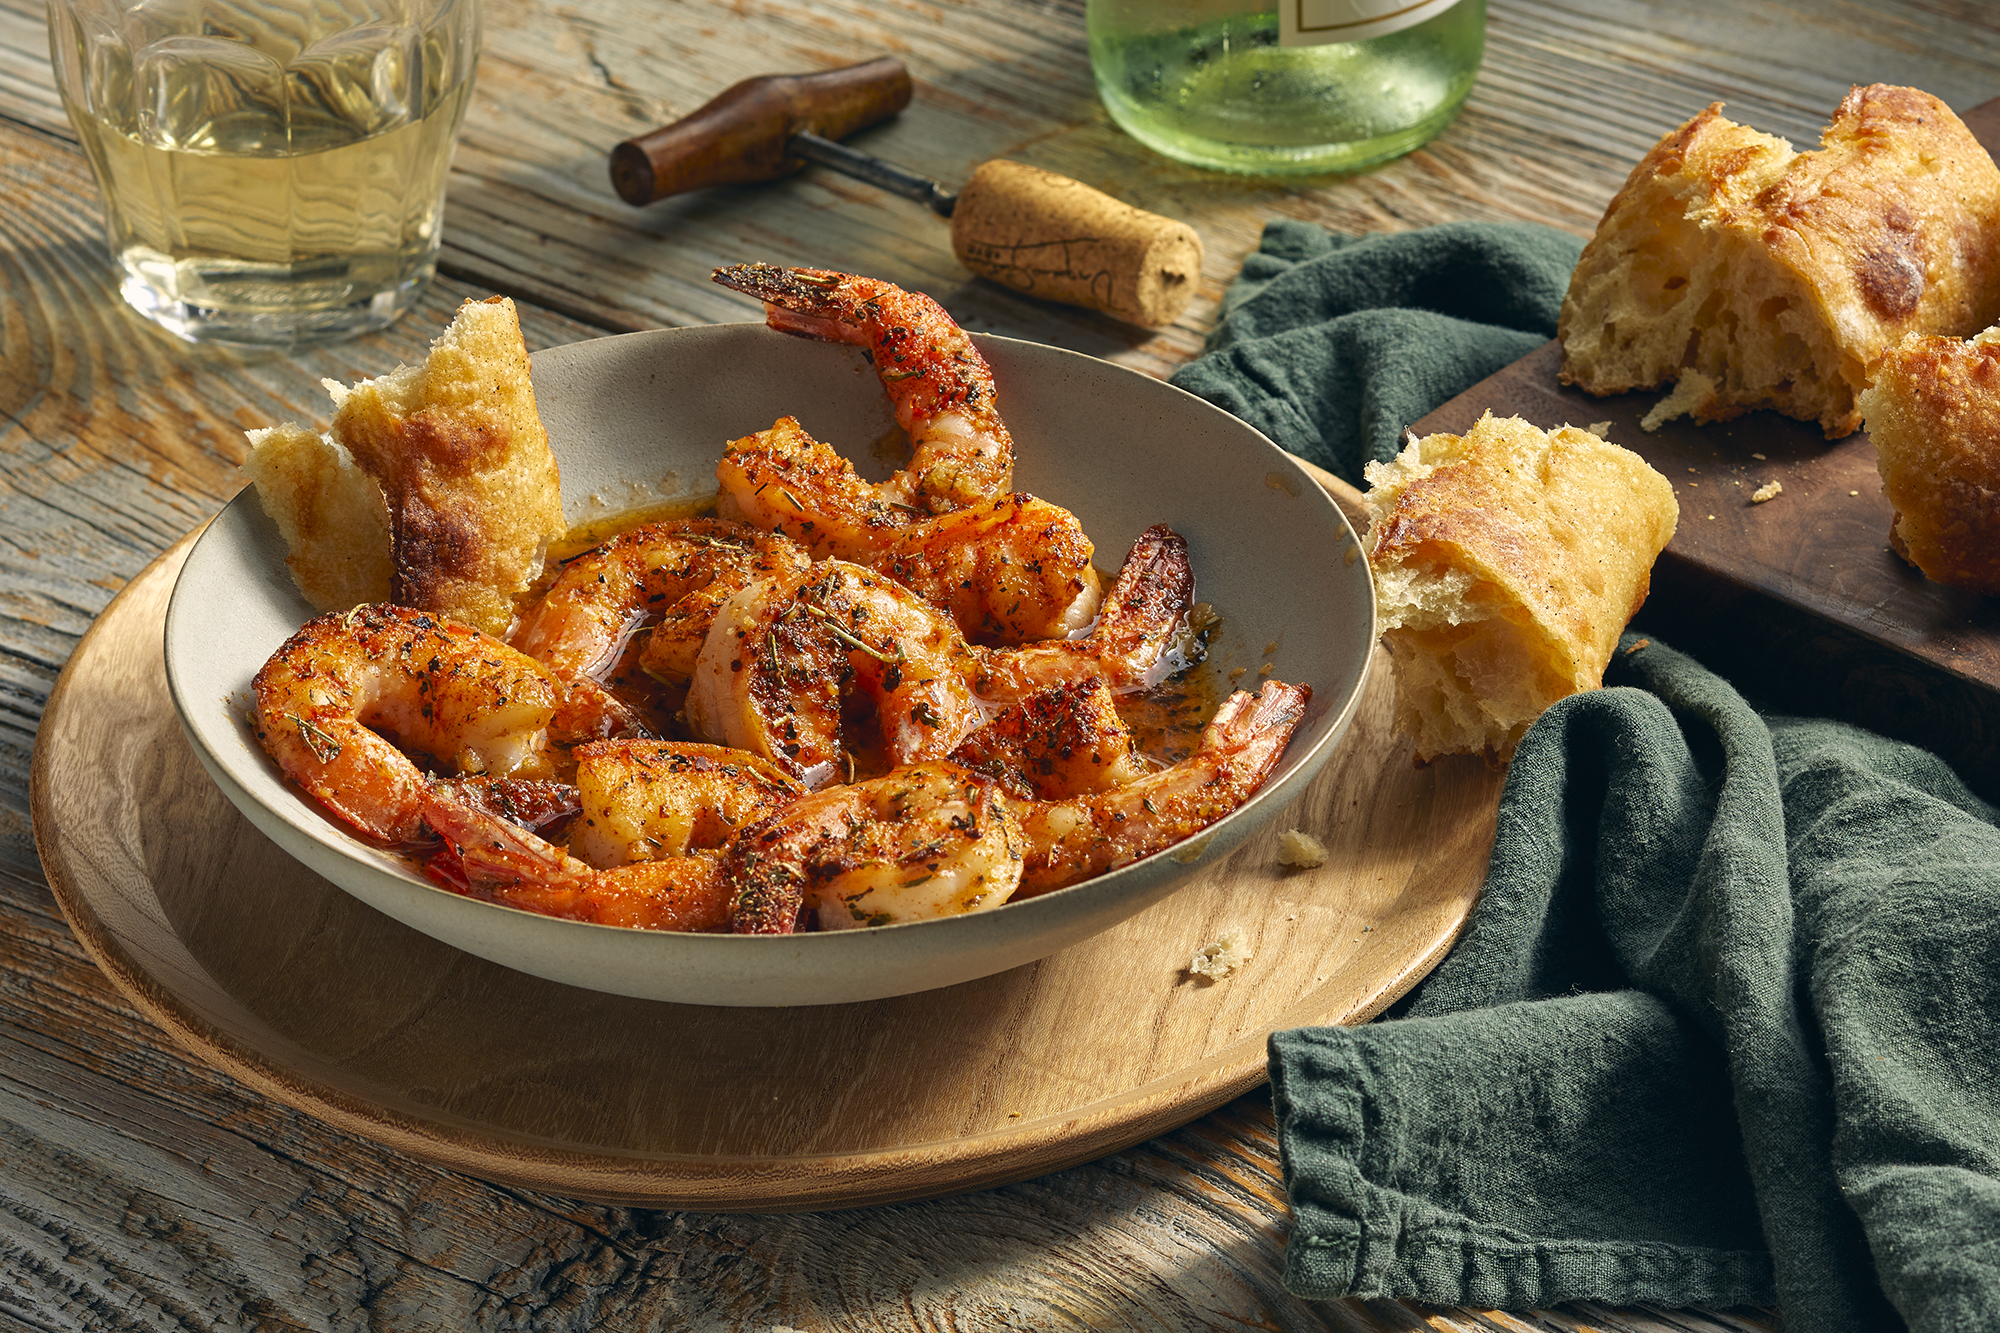 New Orleans barbecue shrimp served with crusty bread and white wine